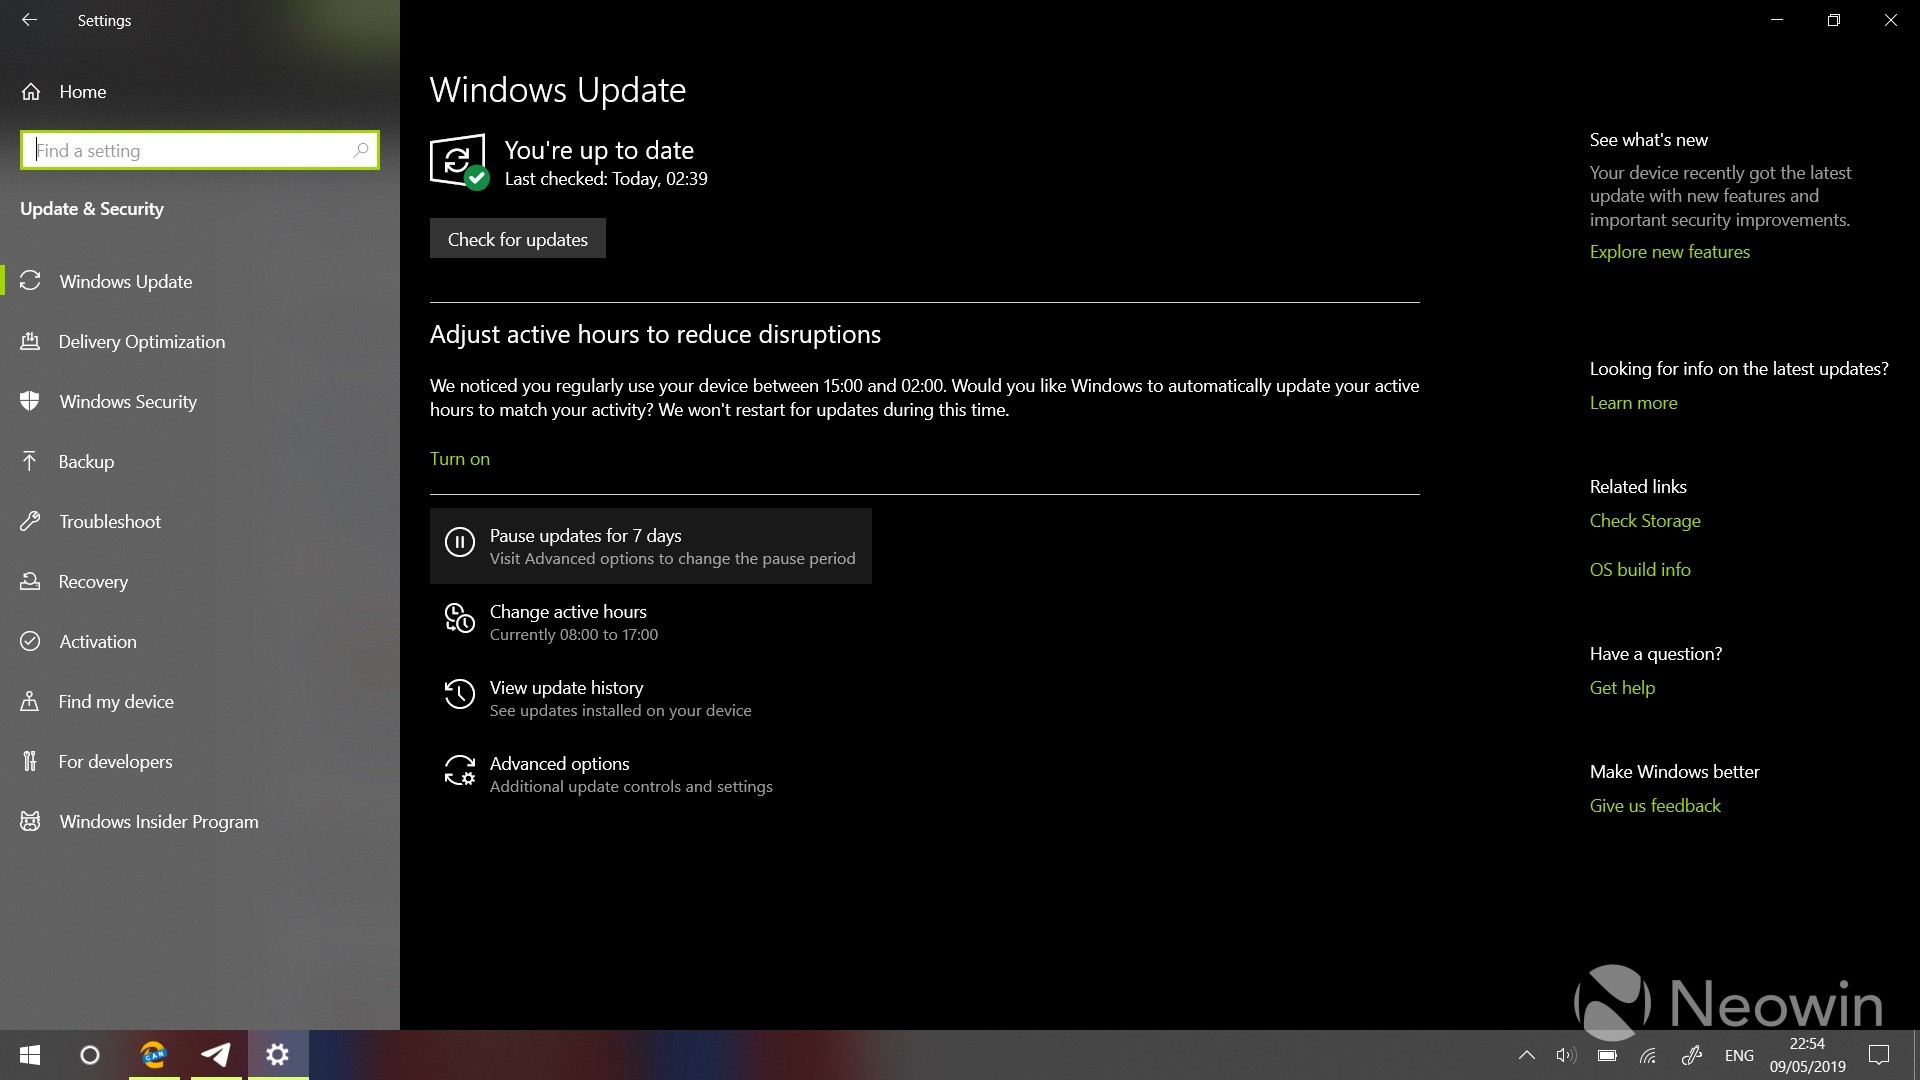 The Windows 10 May 2019 Update is coming - here's what's new